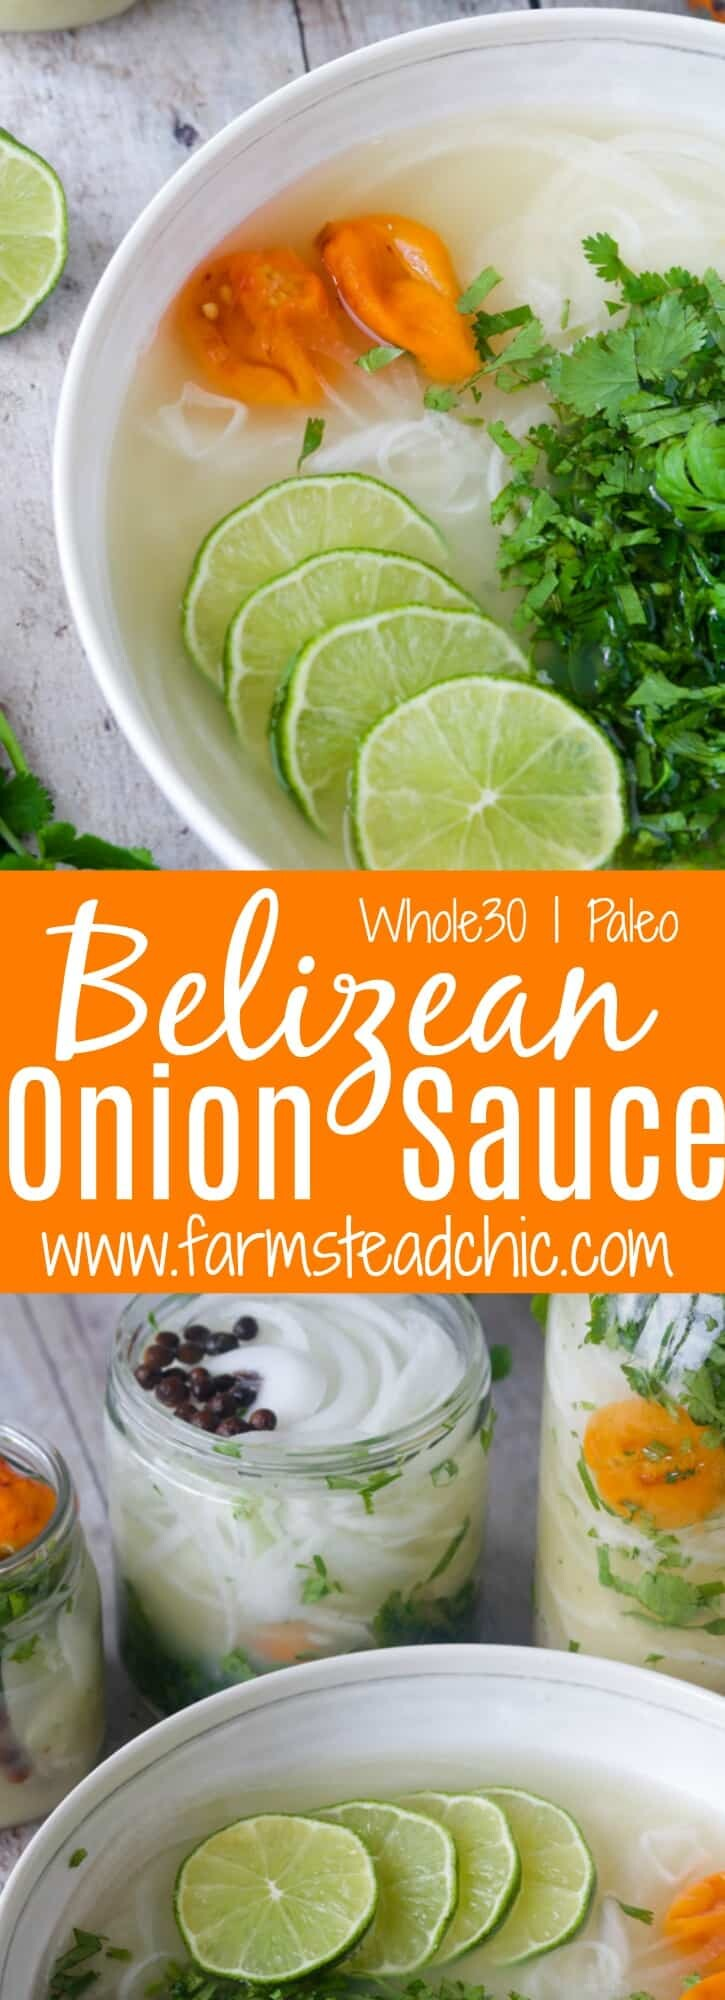 With just a few simple ingredients, this Whole30 and Paleo Belizean Onion Sauce is so easy to make and full of nutrients.  Put it on everything from taco bowls to chicken and cauliflower rice or just eat it with grain free tortilla or veggie chips!